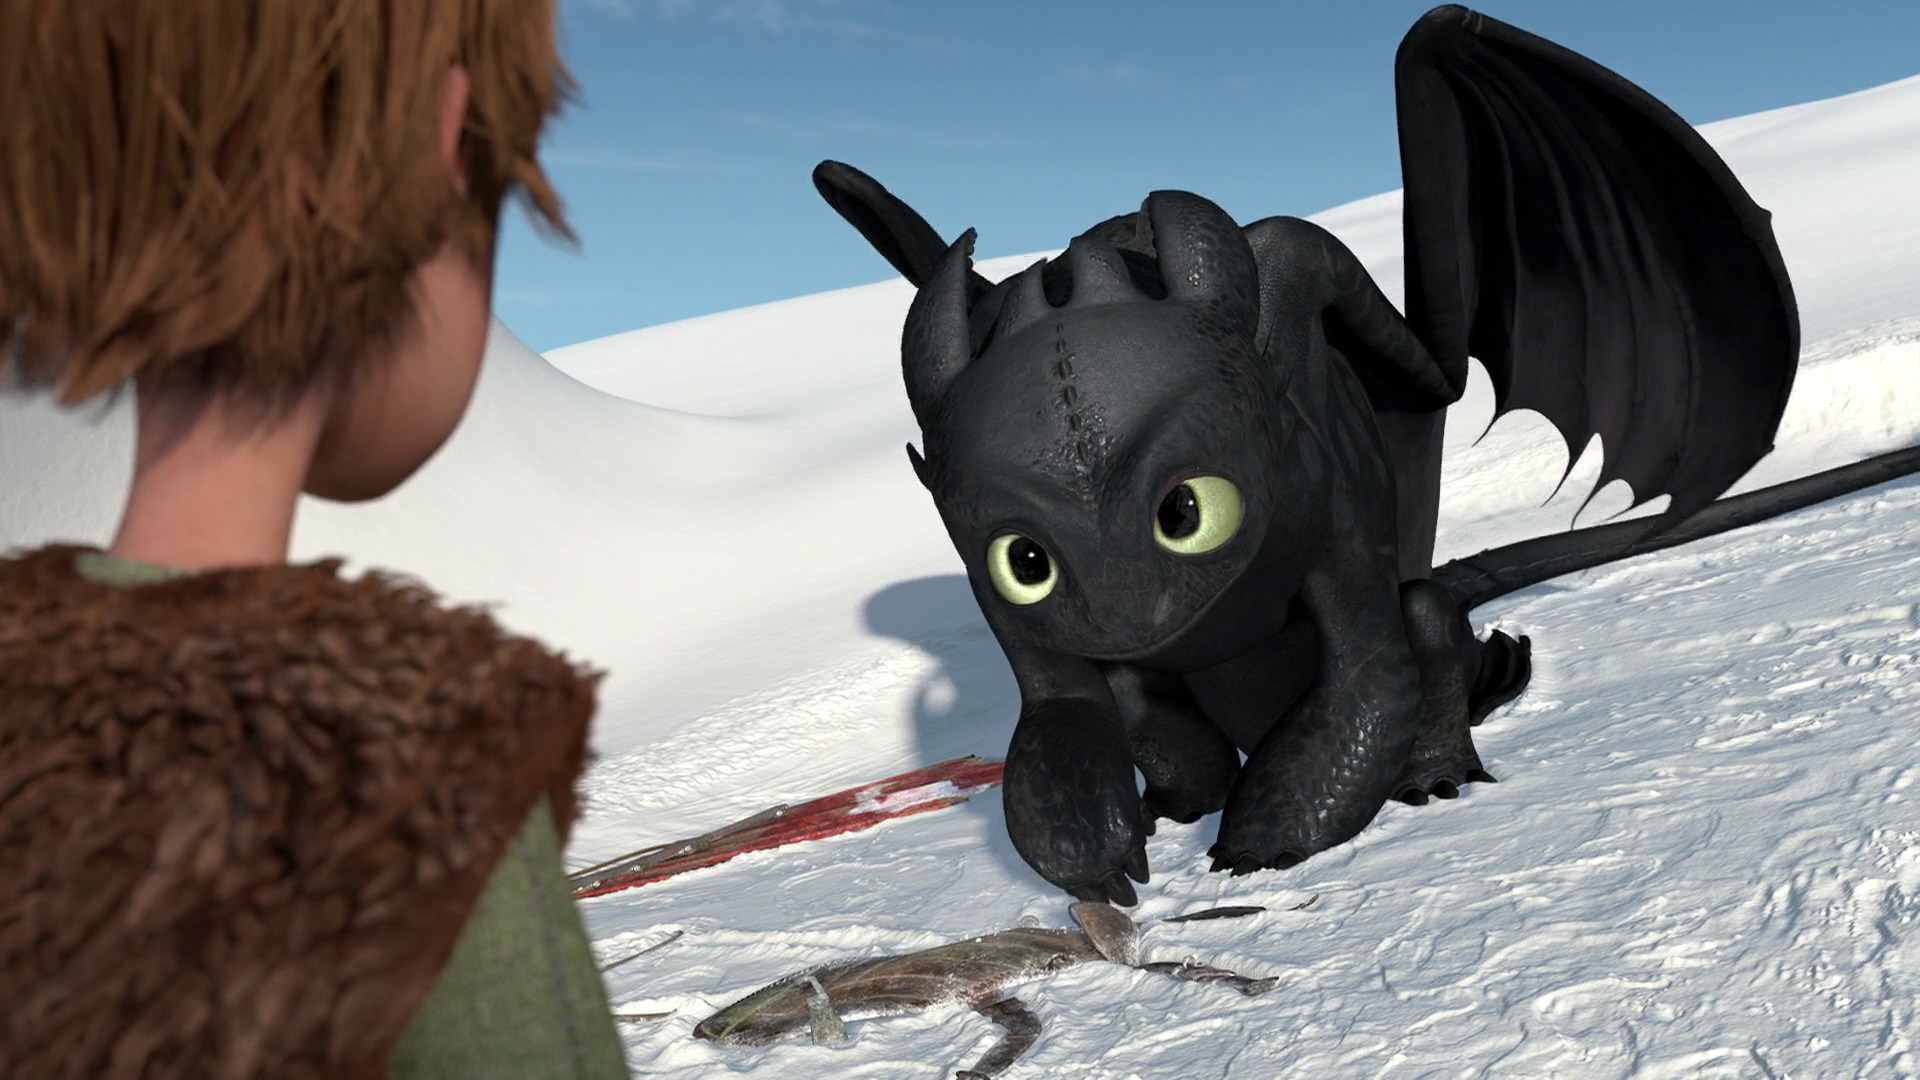 Gift of the night fury how to train your dragon wiki fandom gift of the night fury how to train your dragon wiki fandom powered by wikia ccuart Image collections